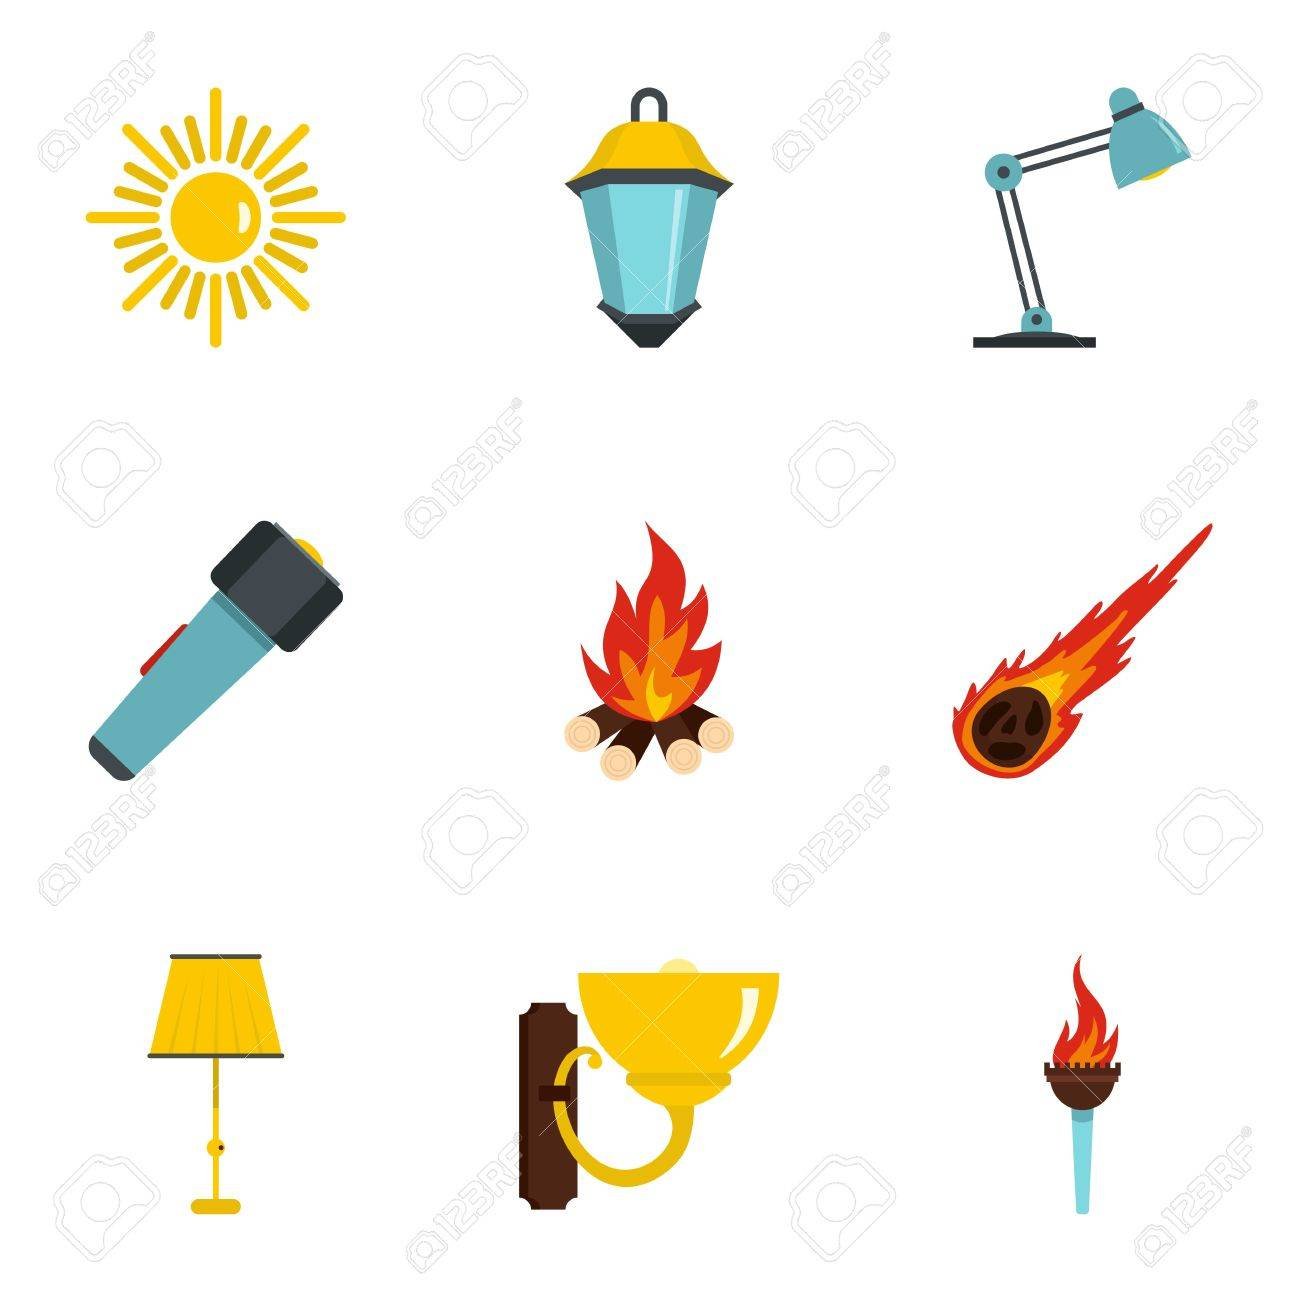 sources of light icon set flat style set of 9 sources of light rh 123rf com light vector ai light vector ai